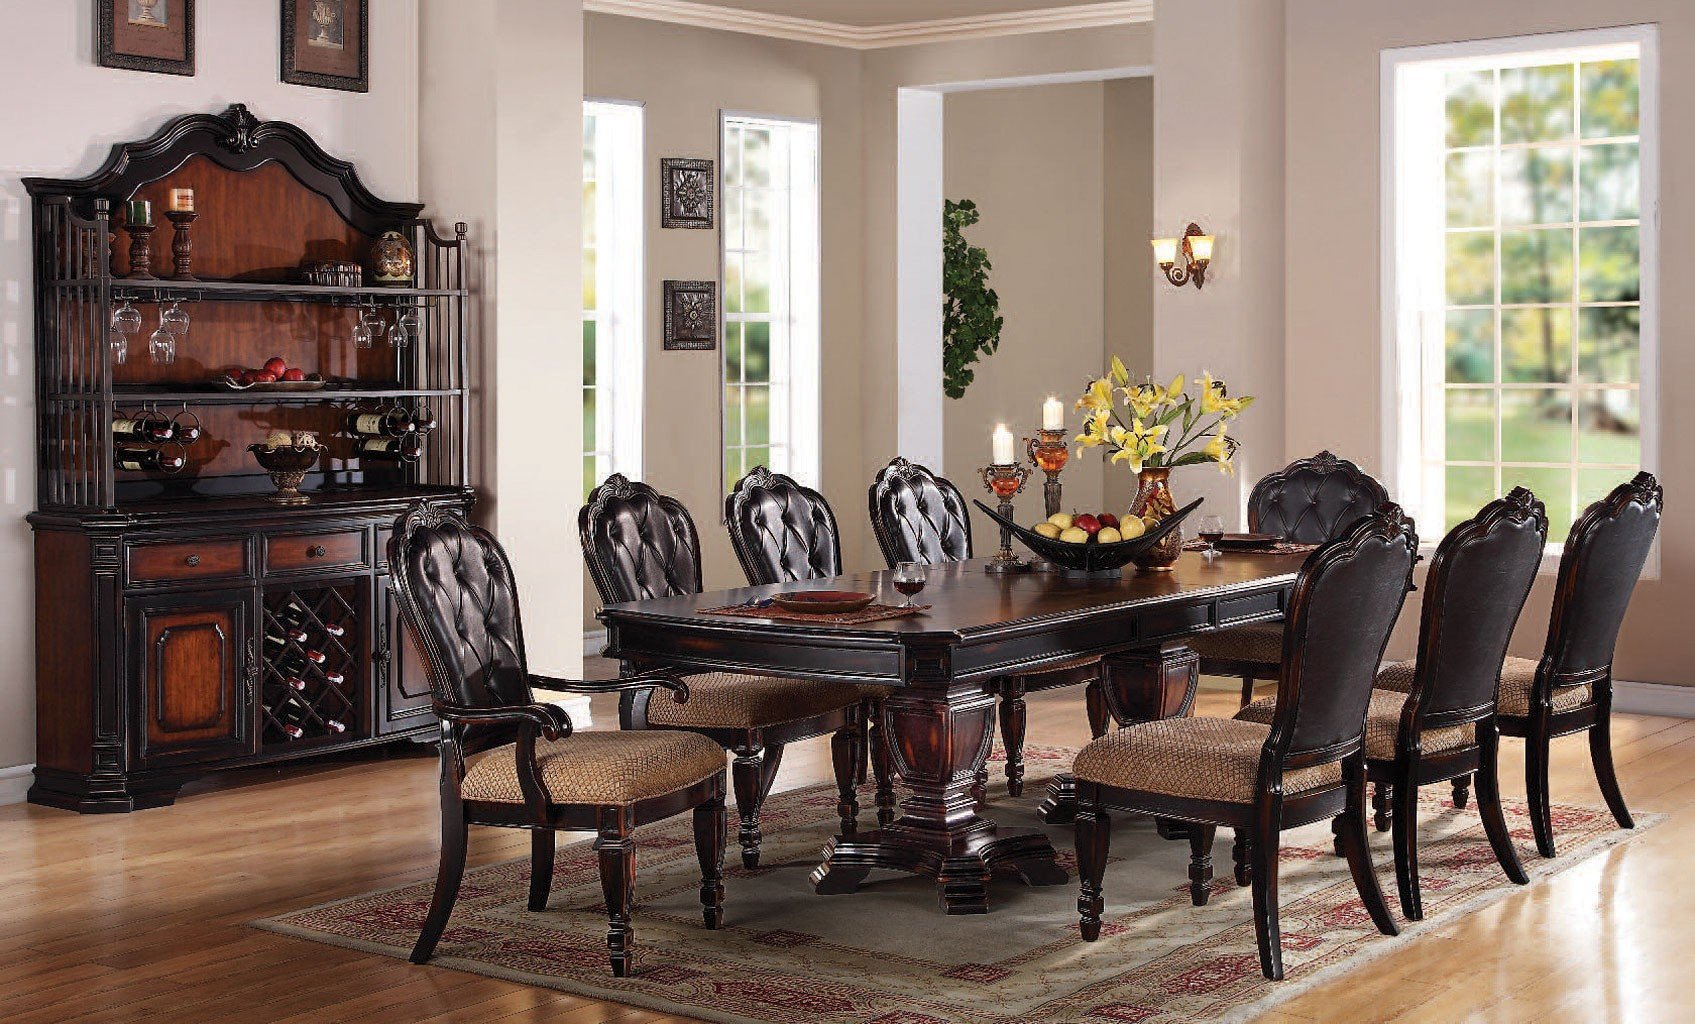 Asian Kitchen Le Havre le havre dining room set